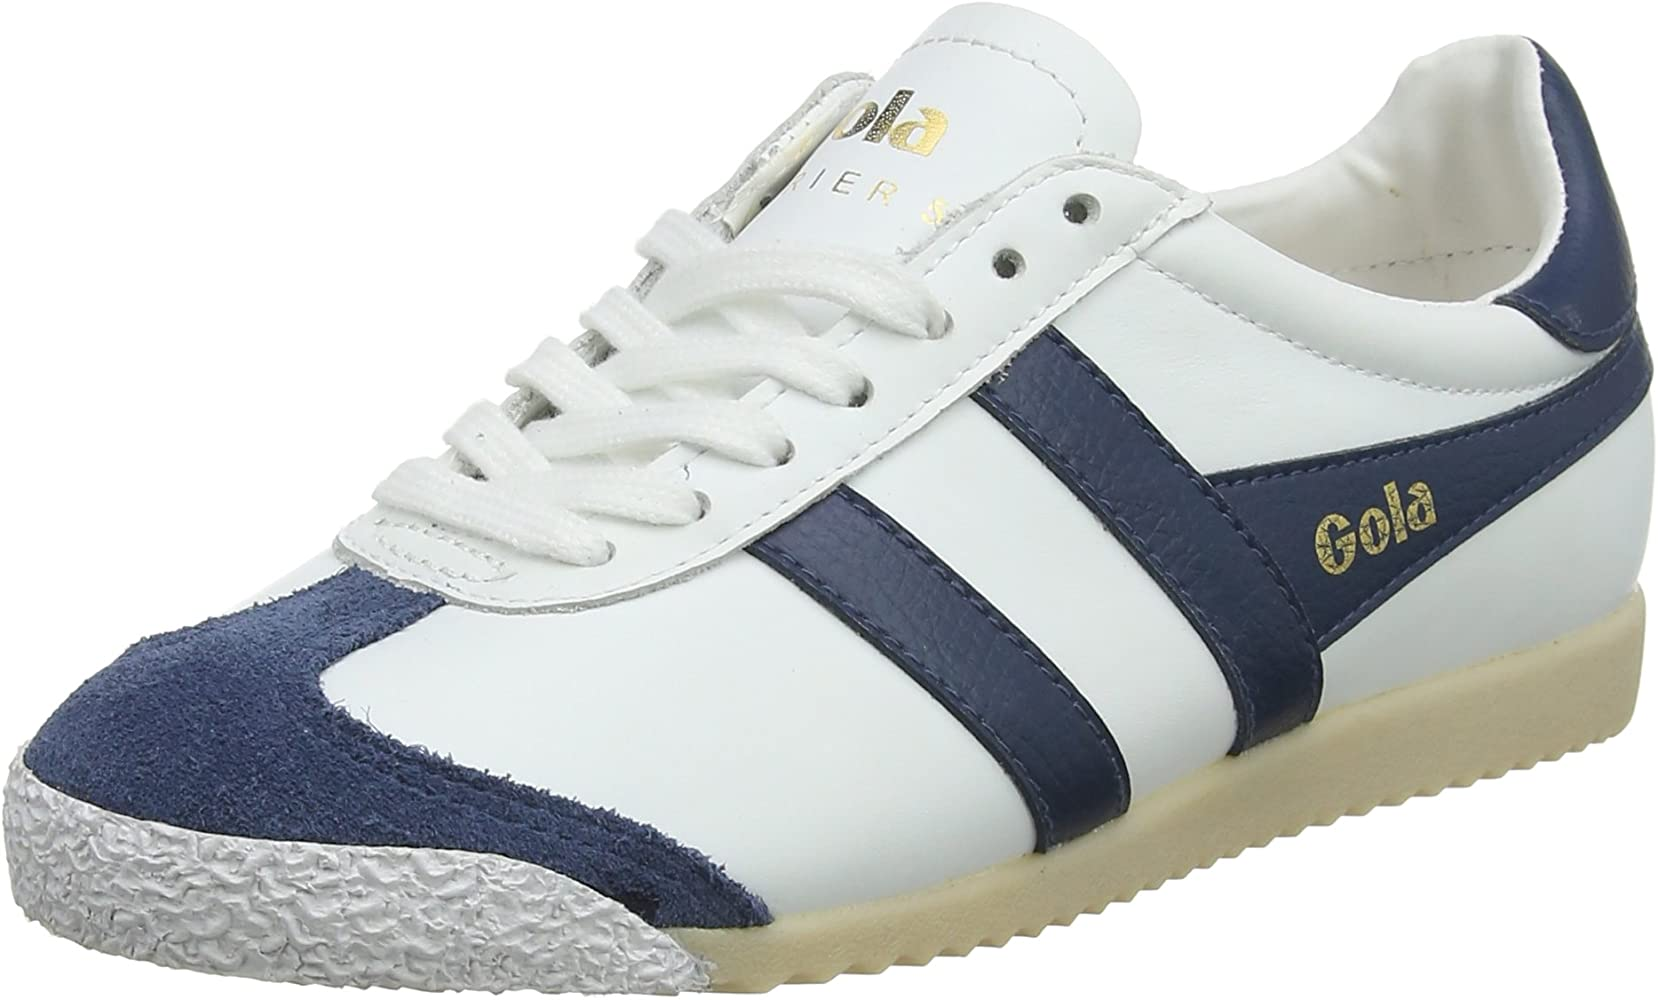 Harrier 50 Leather Trainers, White